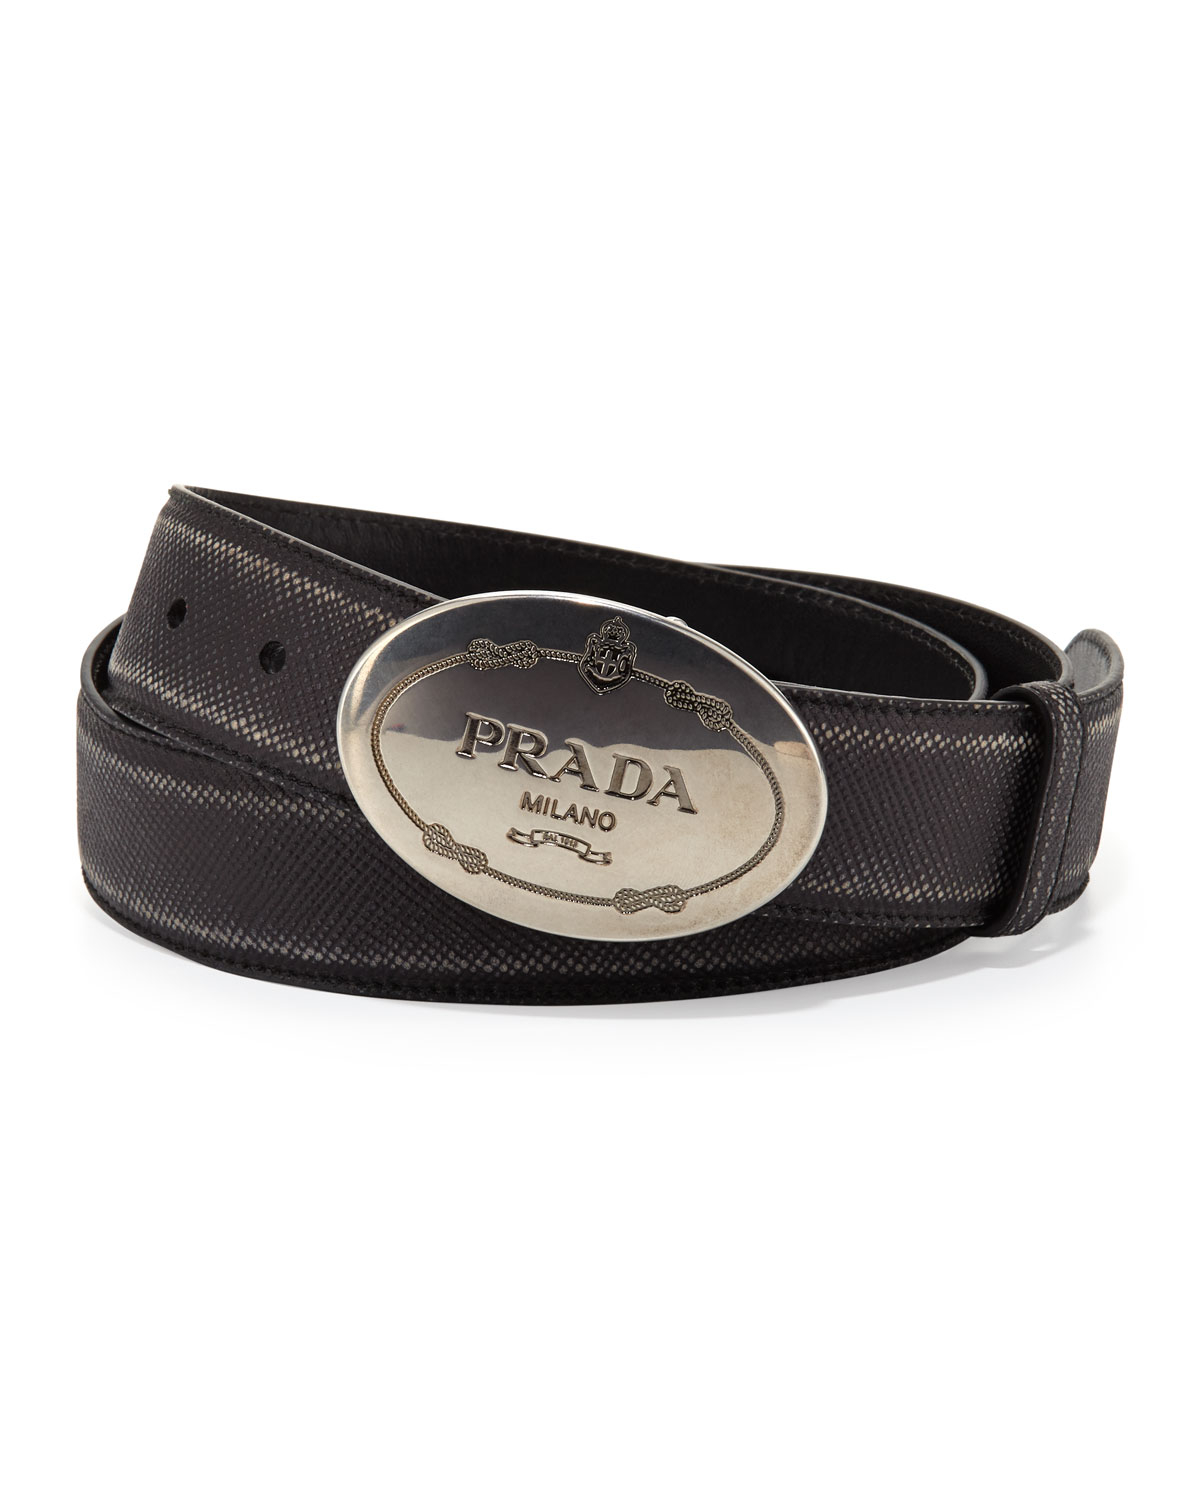 18532f2135 ireland prada men belt uk 521a3 8e975